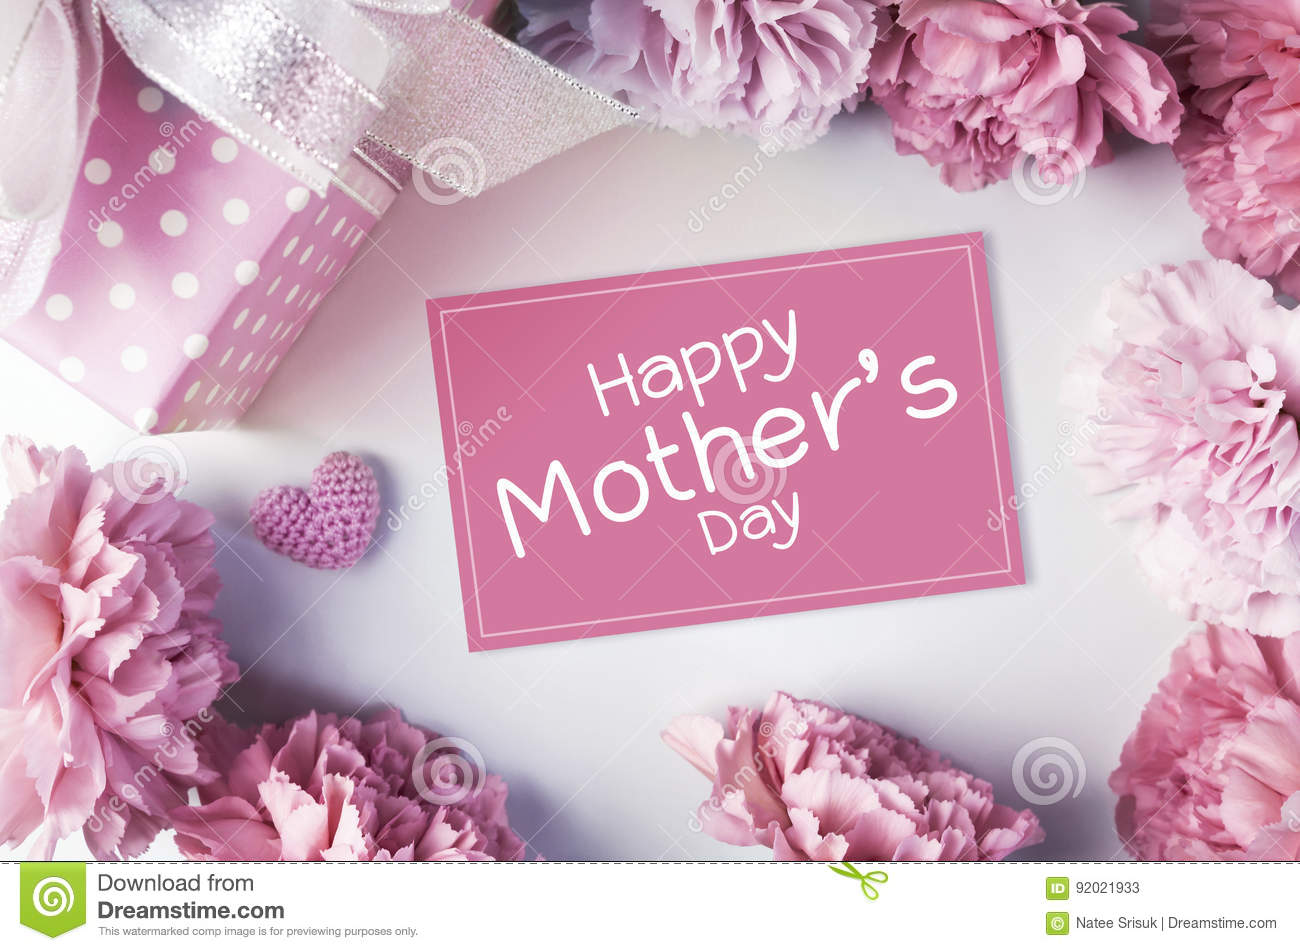 Happy mothers day message on pink paper and carnation flowers an happy mothers day message on pink paper and carnation flowers an mightylinksfo